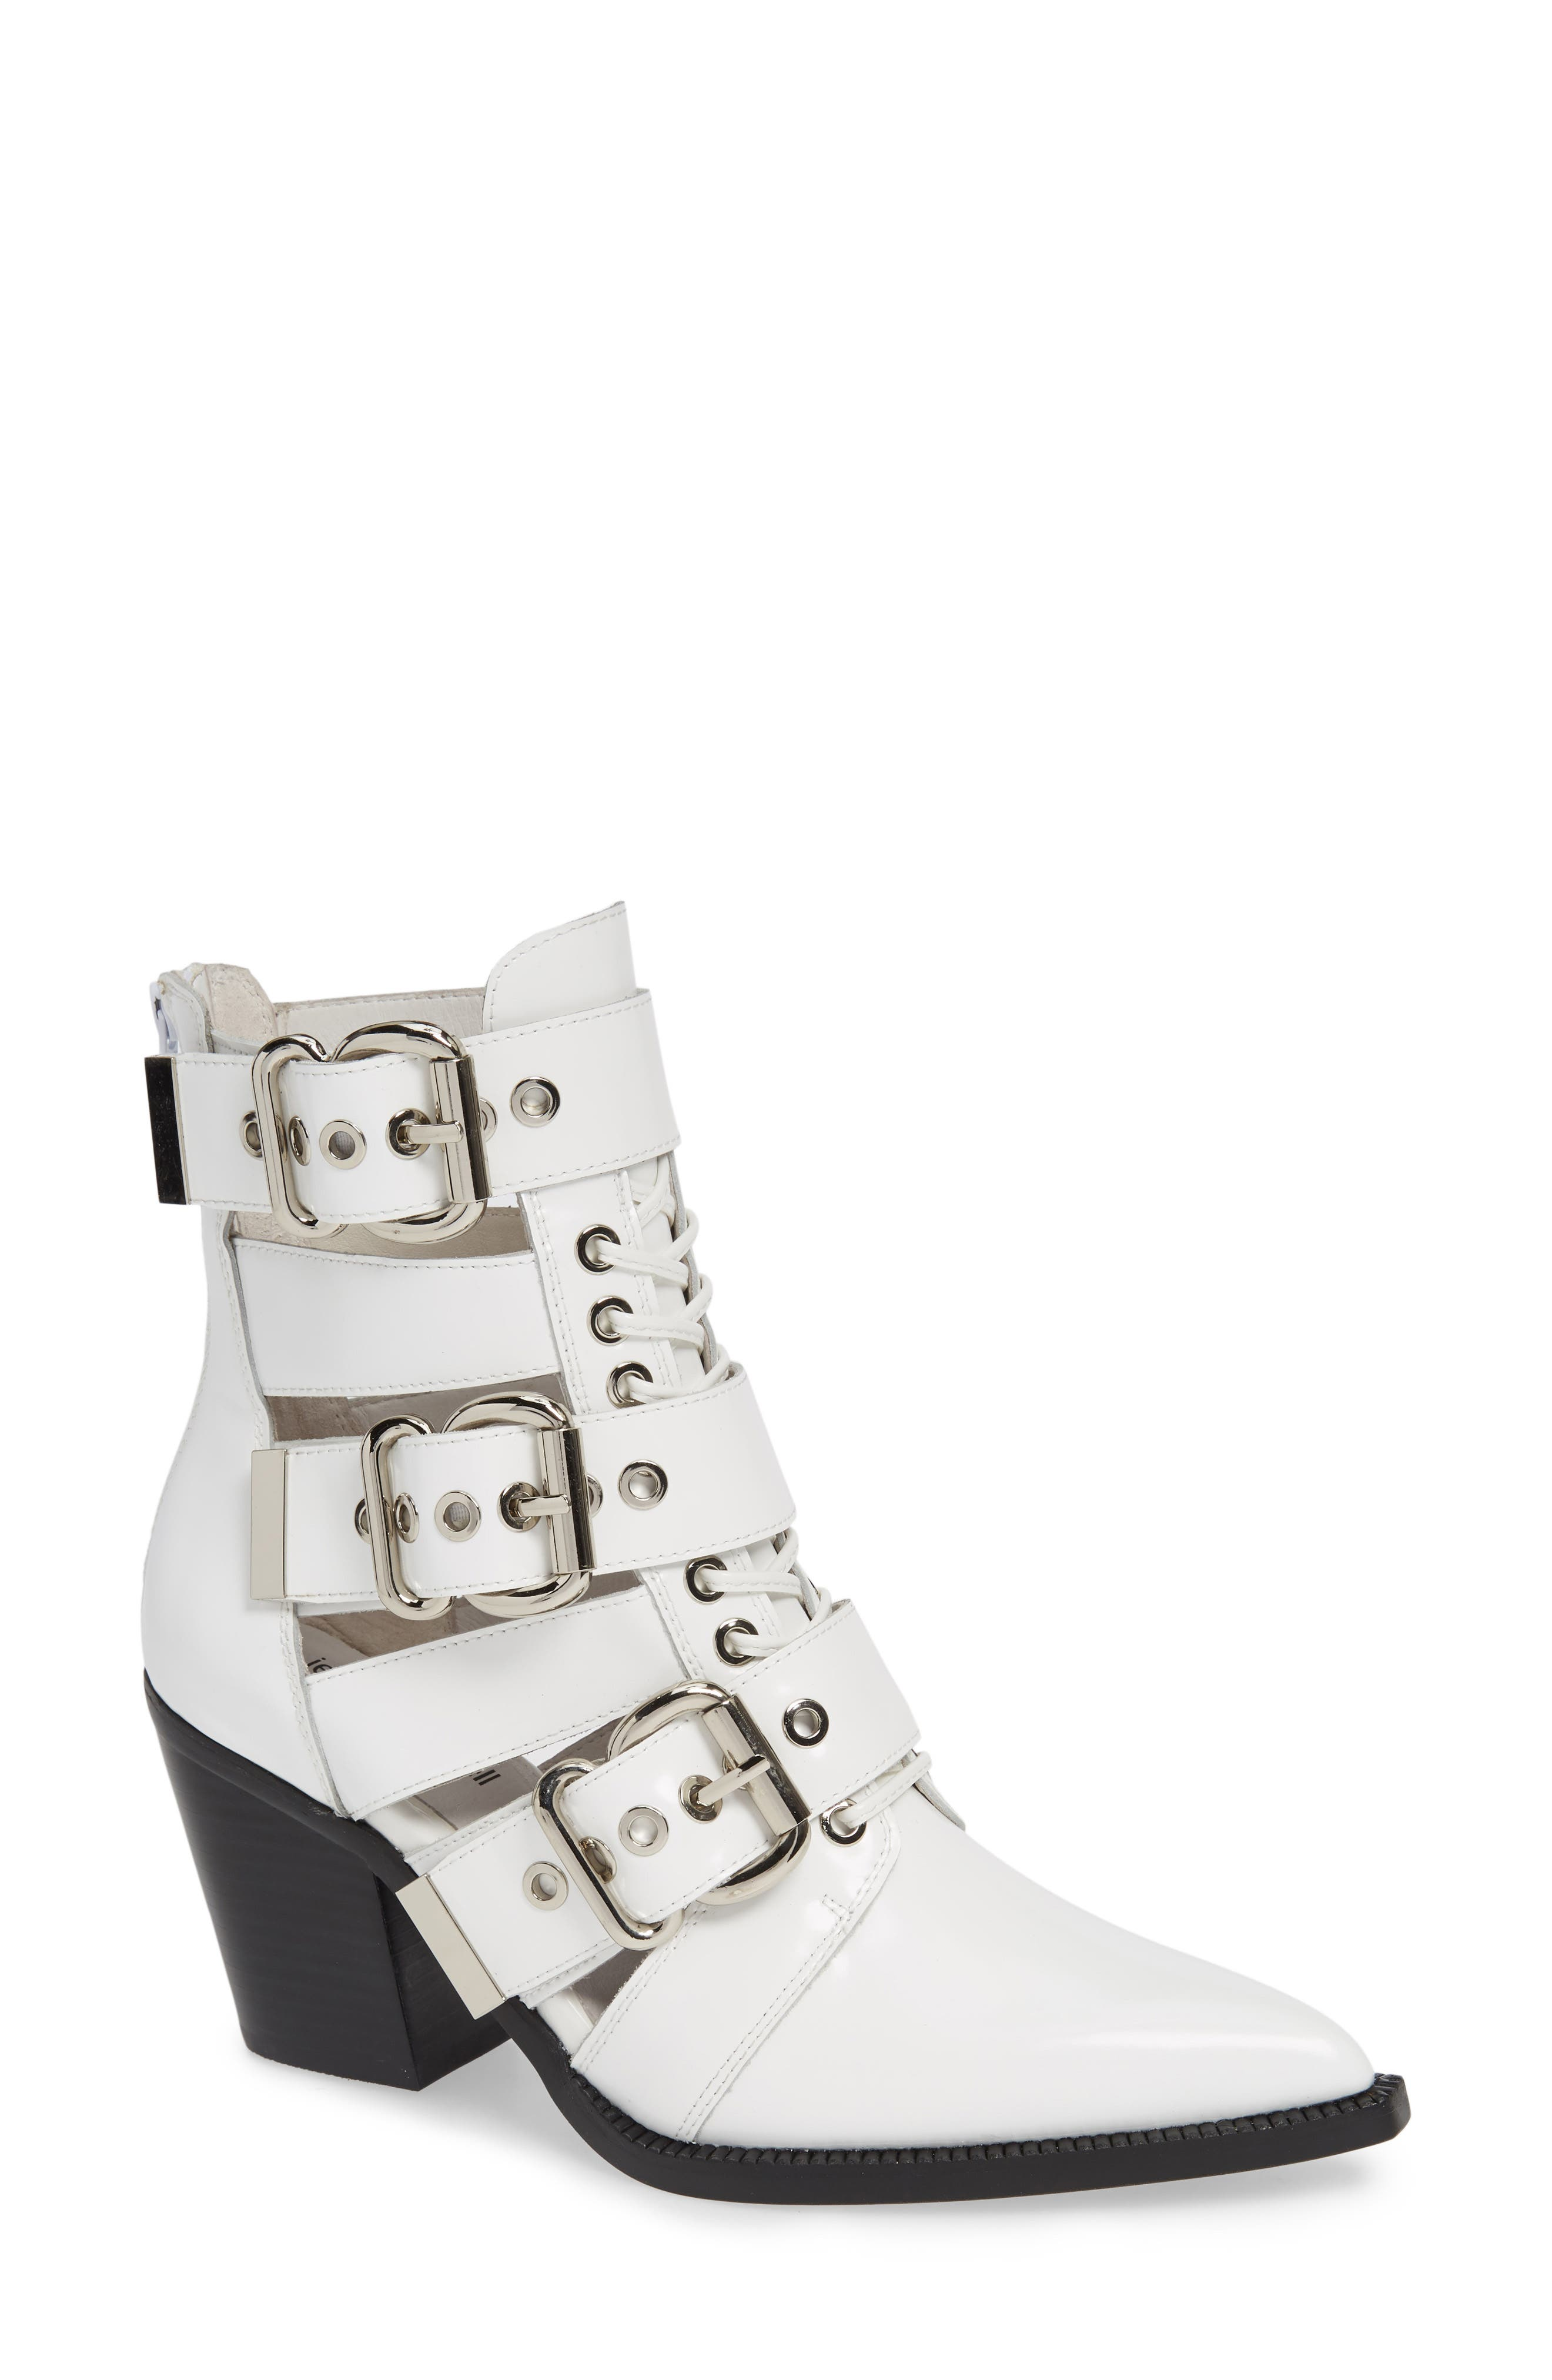 Jeffrey Campbell Caceres Bootie, White